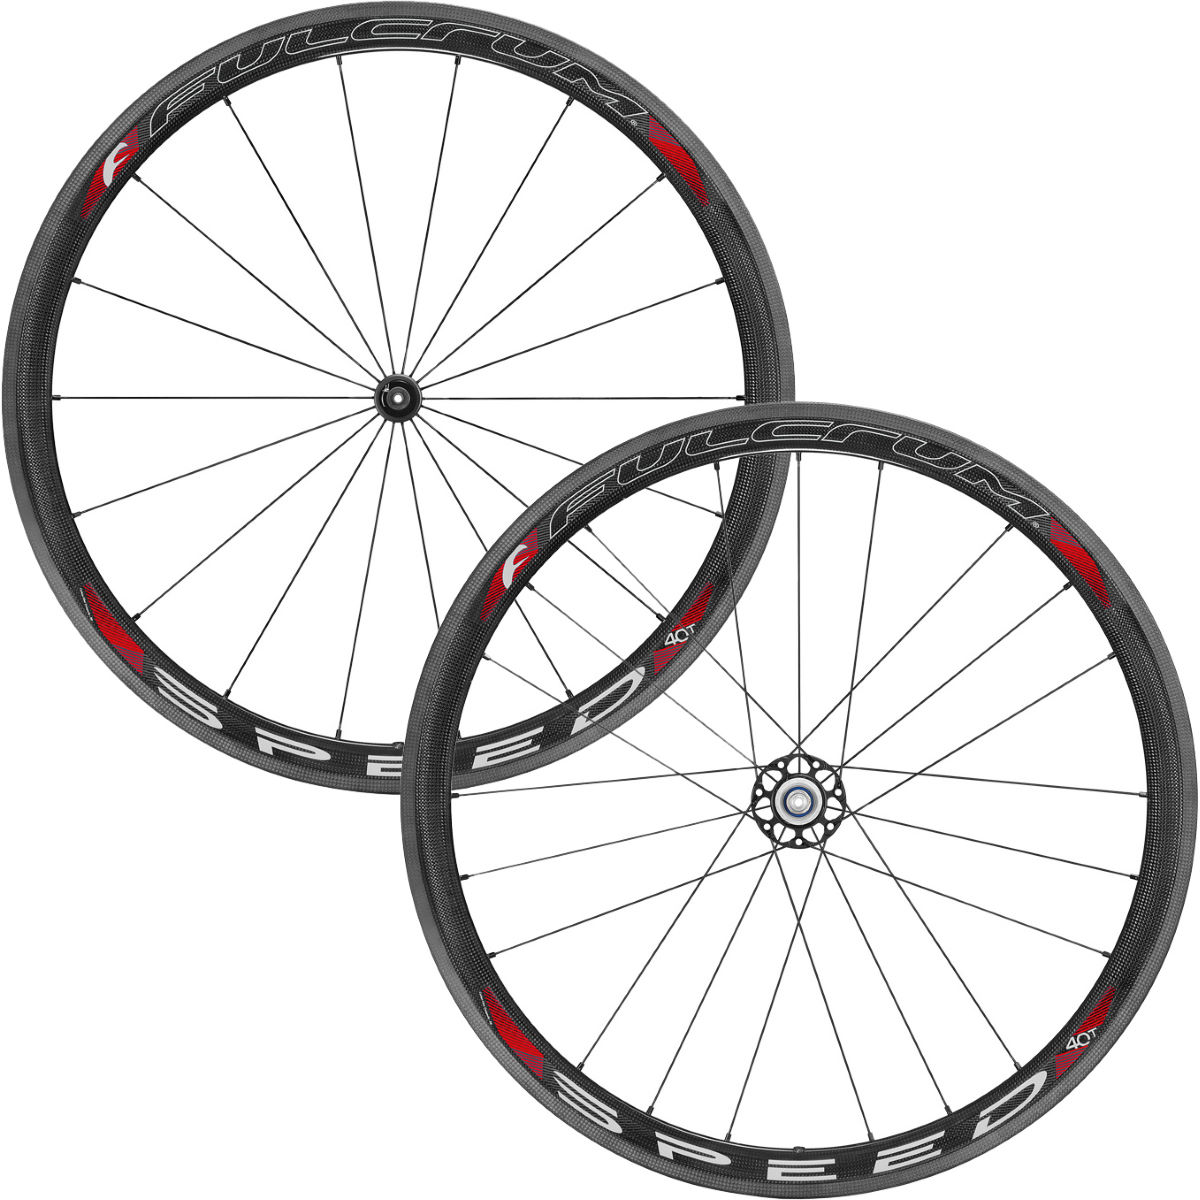 Road wheels set Fulcrum SPEED 40T Carbon for tubular - Competition wheels